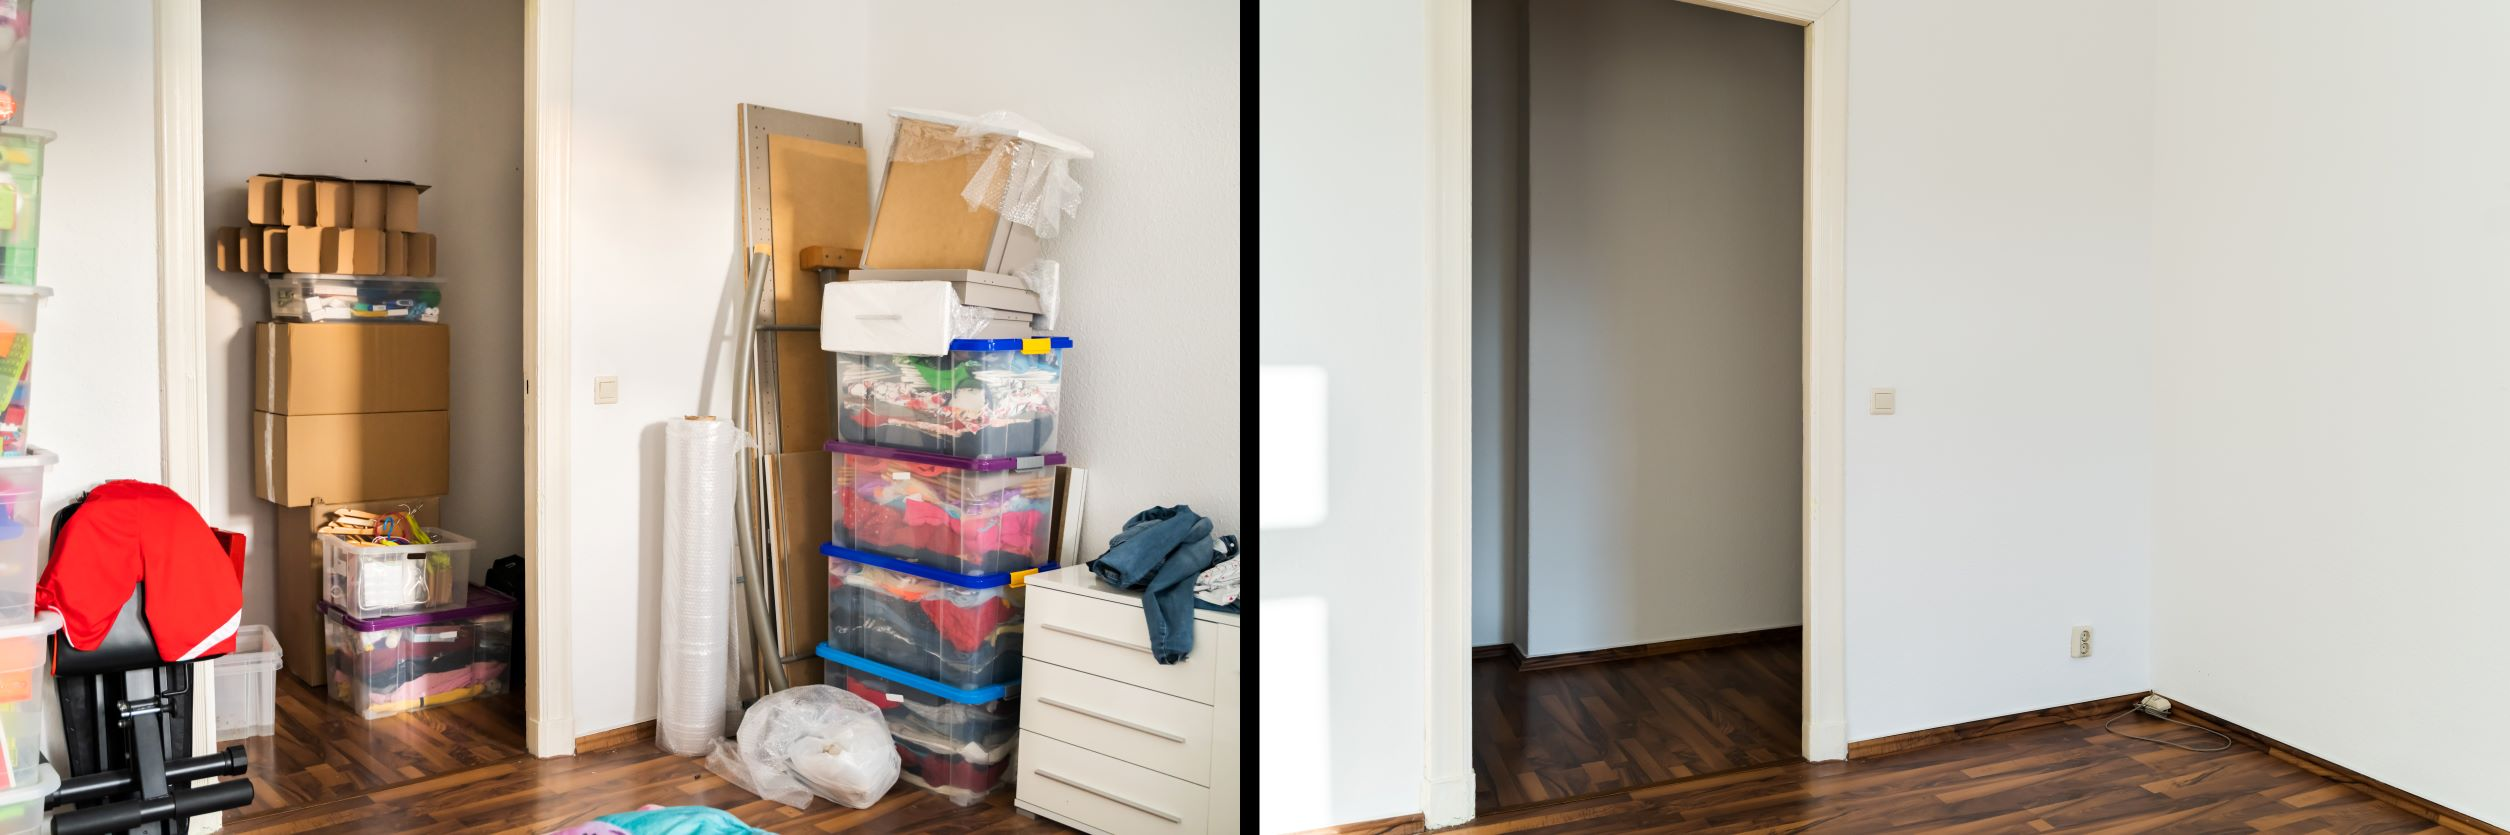 Decluttering Before a Renovation